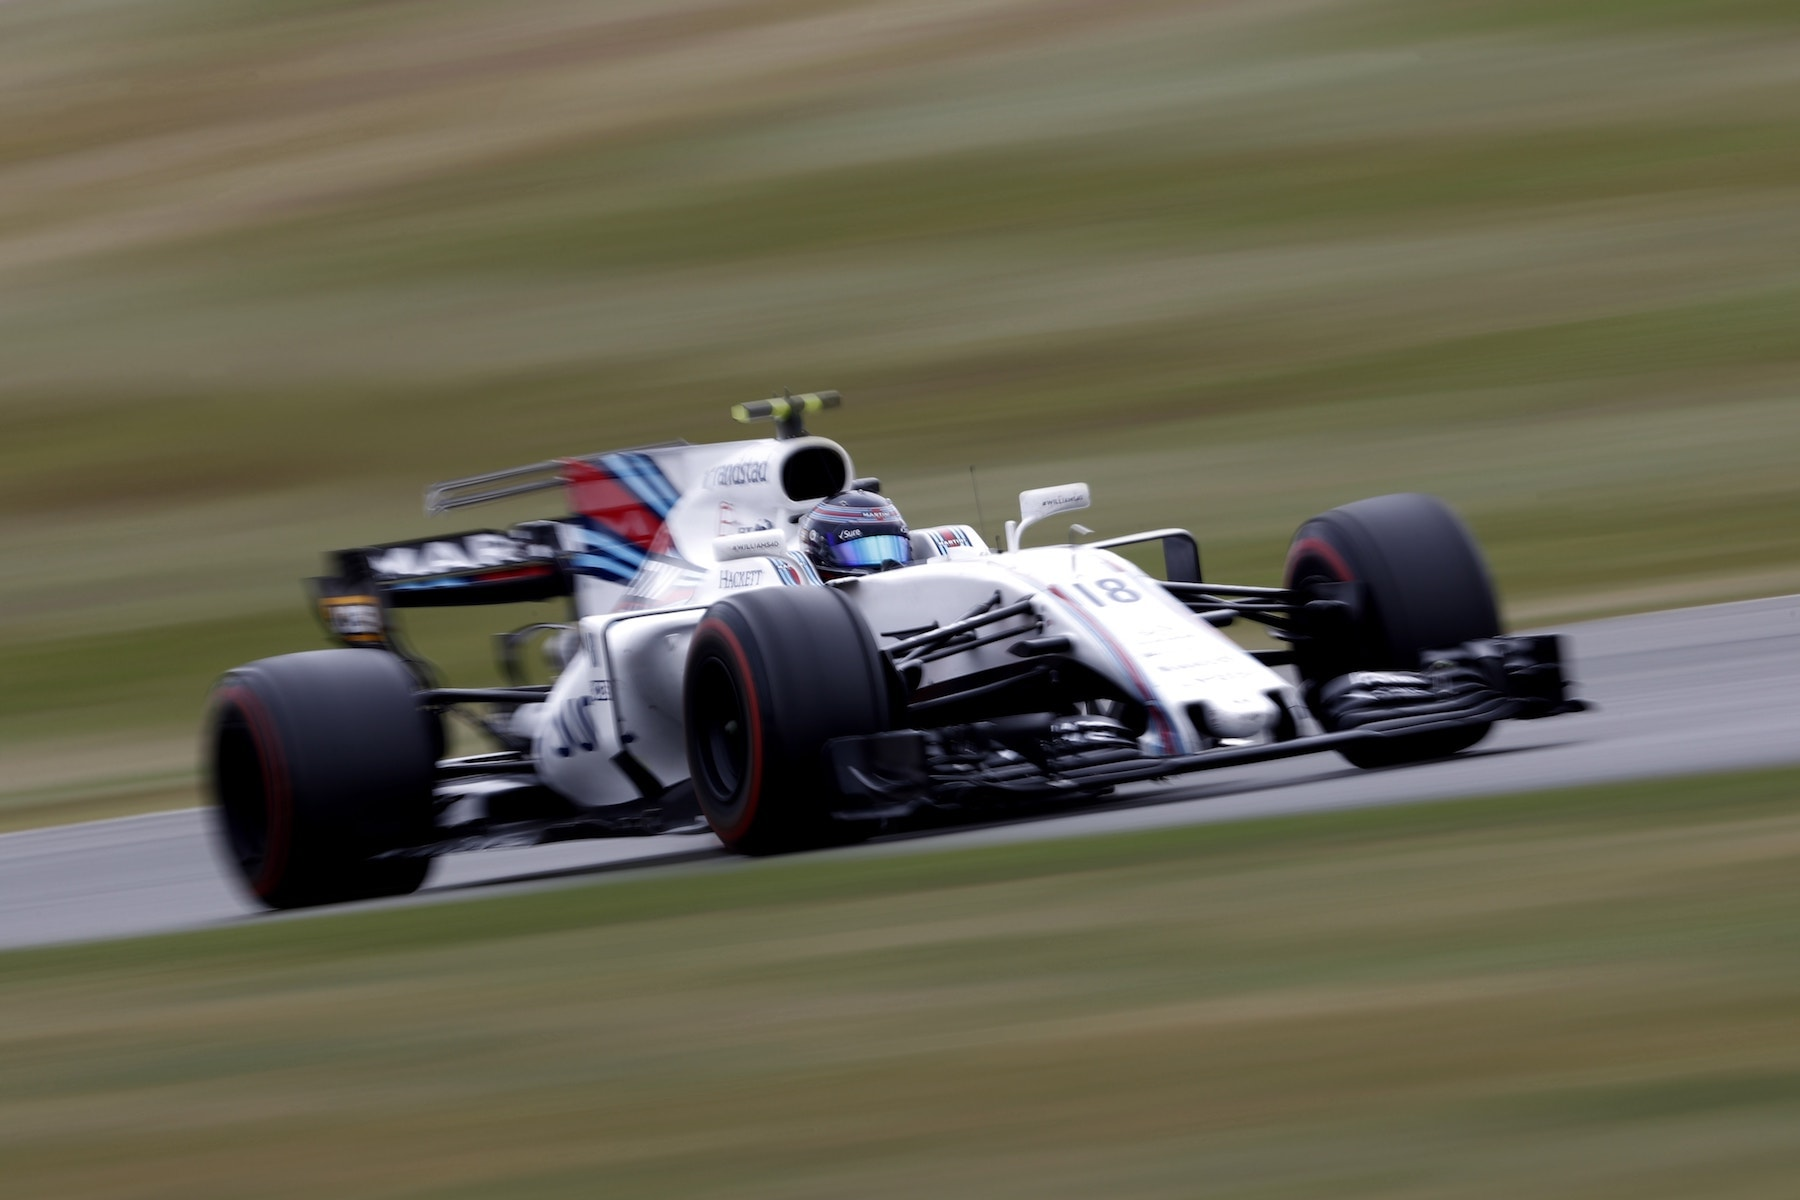 J 2017 Lance Stroll | Williams FW40 | 2017 British GP 2 copy.jpg